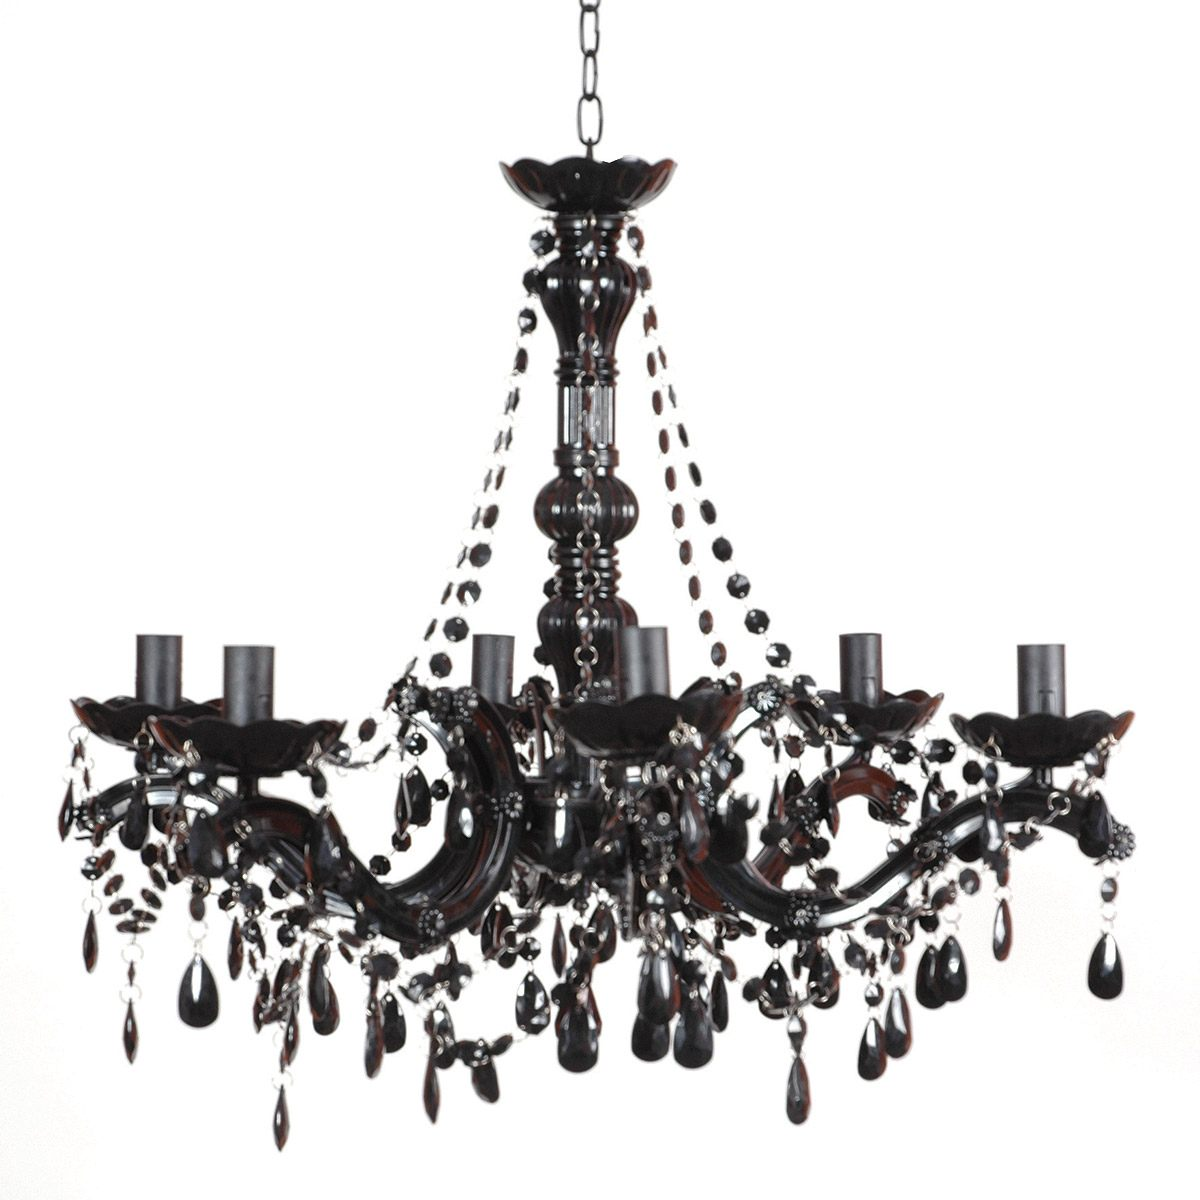 Luxury French Chandeliers Lights